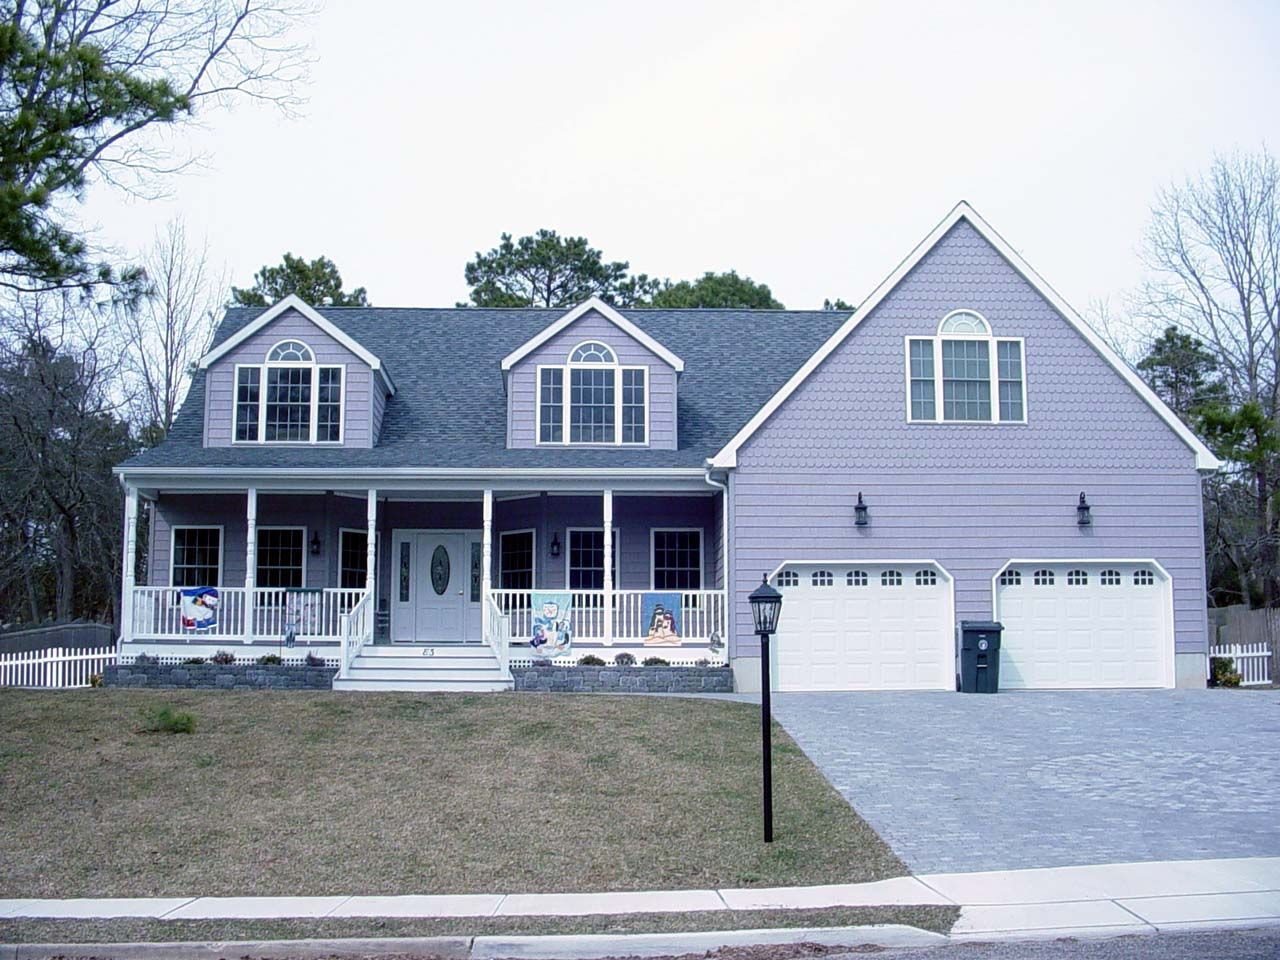 Cape cod style home with farmers porch two car garage and for Cape cod style house